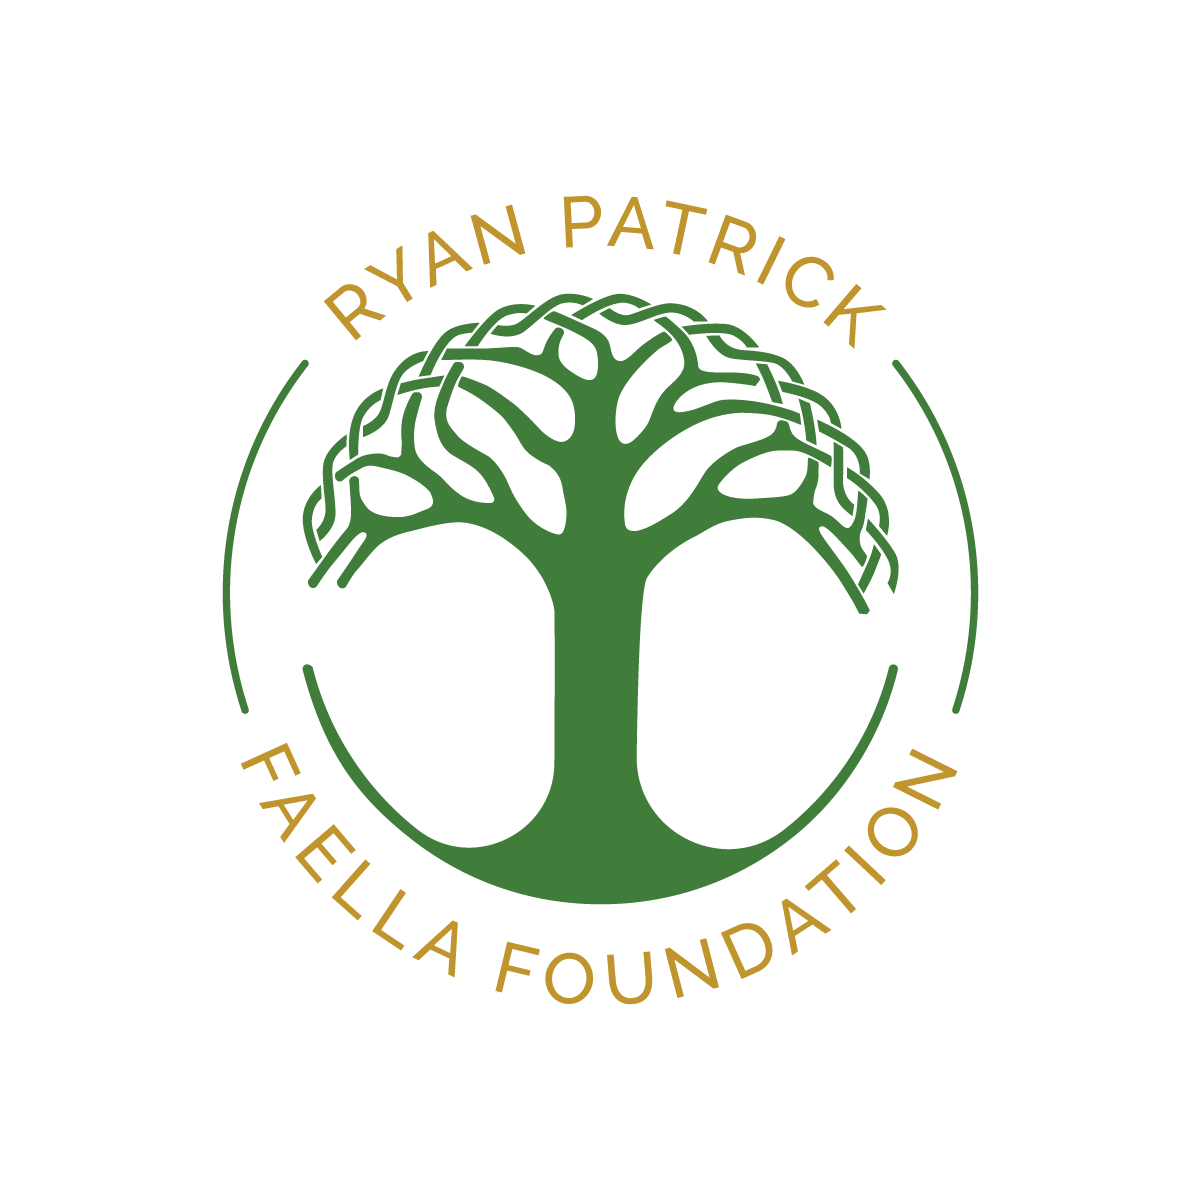 Ryan Patrick Faella Foundation